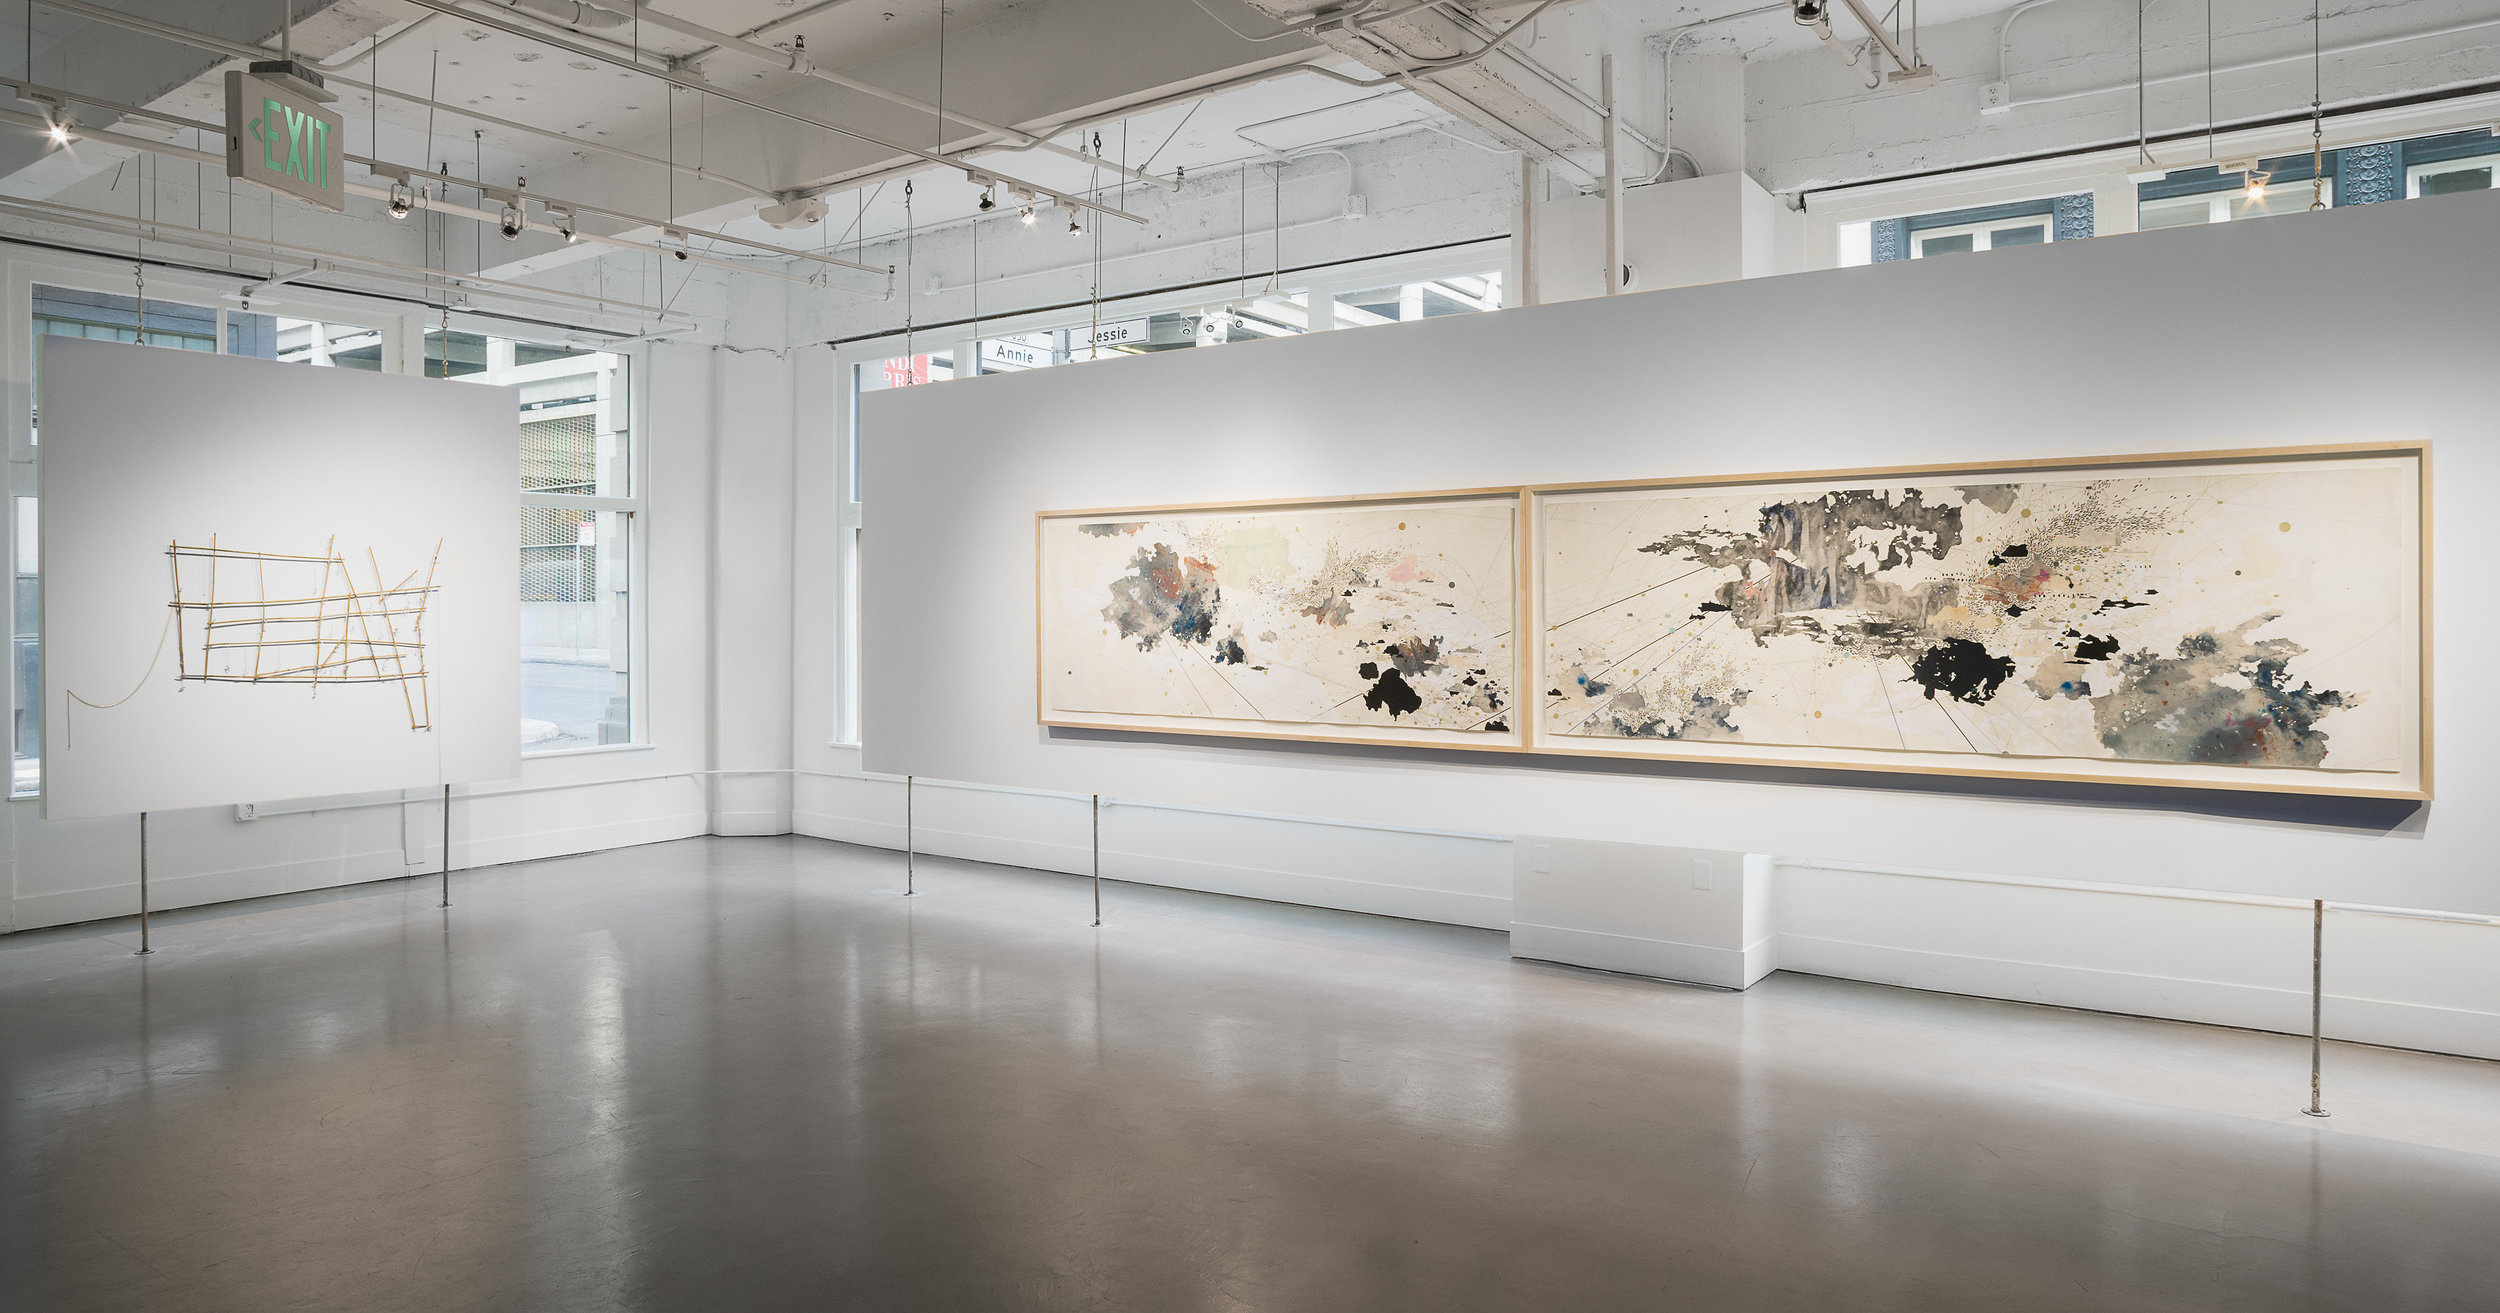 Seeking Civilization: Art and Cartography,  installation view, Gallery Wendi Norris, March 23 - May 13, 2017, photography: Hewitt Photography